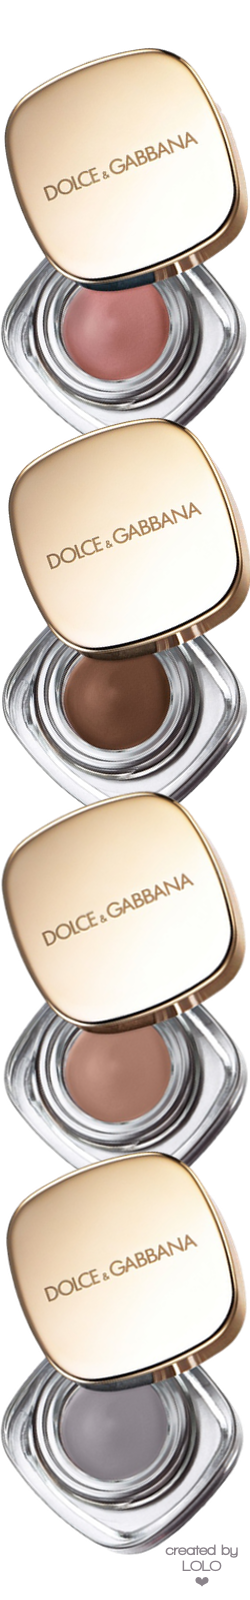 Dolce&Gabbana Beauty 'Perfect Mono' Matte Cream Eye Color | LOLO❤︎